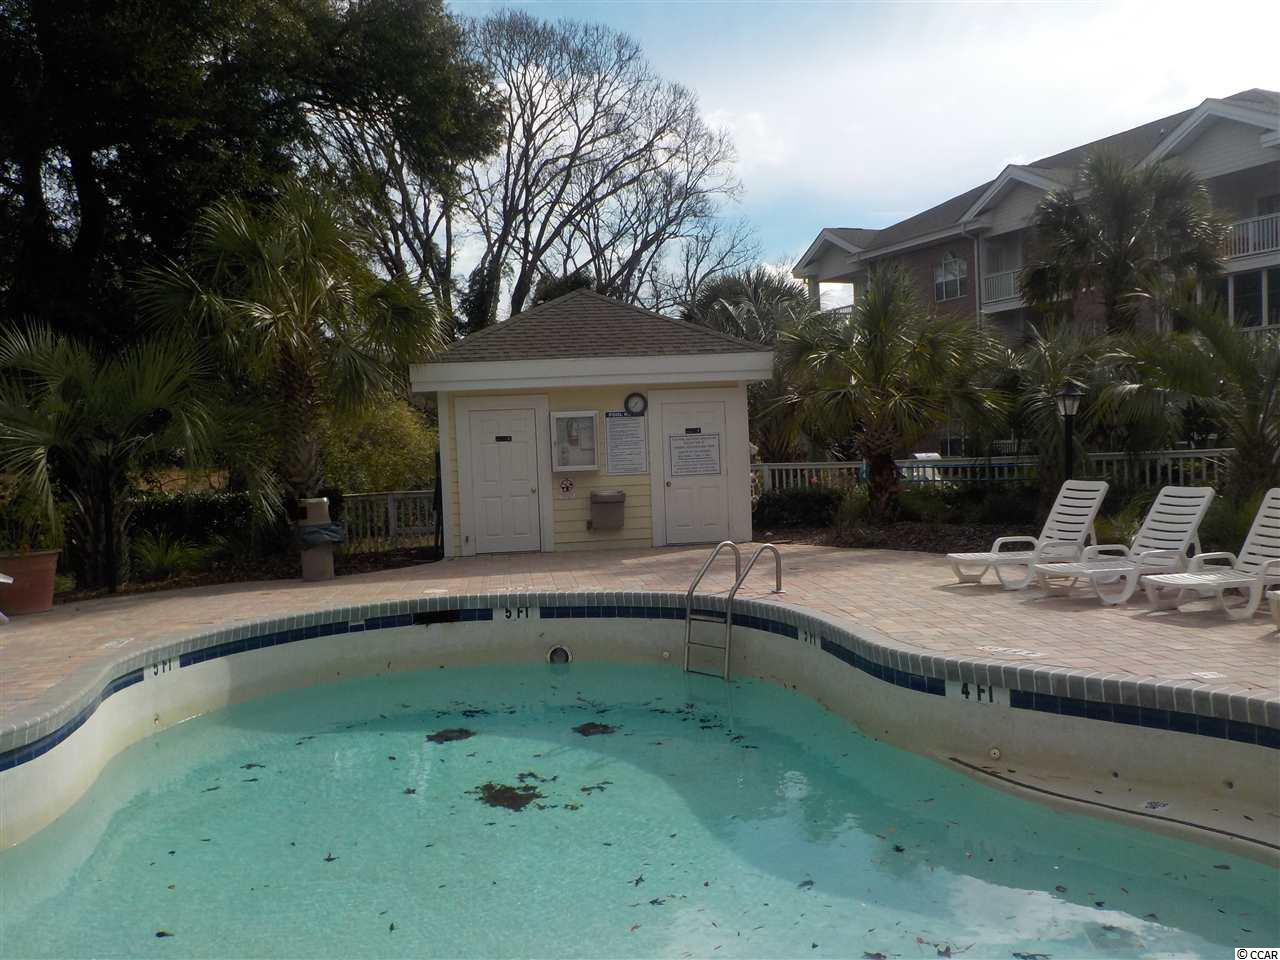 This Efficiency bedroom condo at  Gardens of Cypress Bay is currently for sale